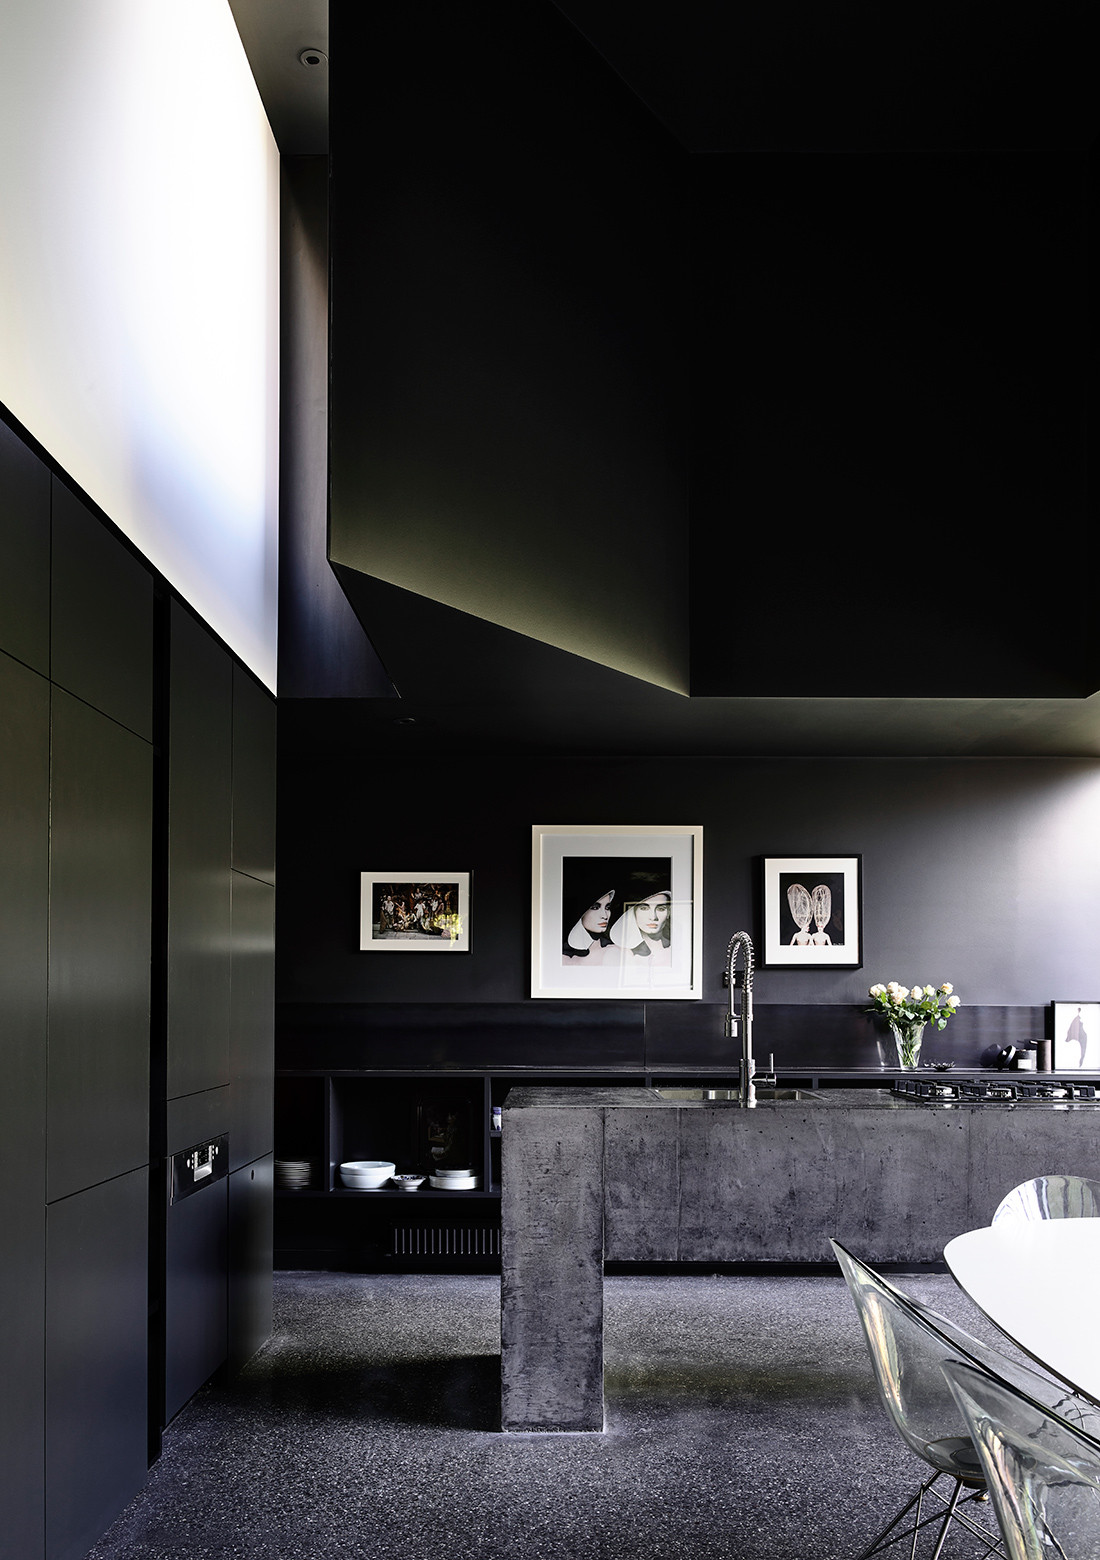 In his brief to architect Robert Simeoni, Crafti requested a 'non-kitchen', rather a gallery-like space to place art and objects on display.